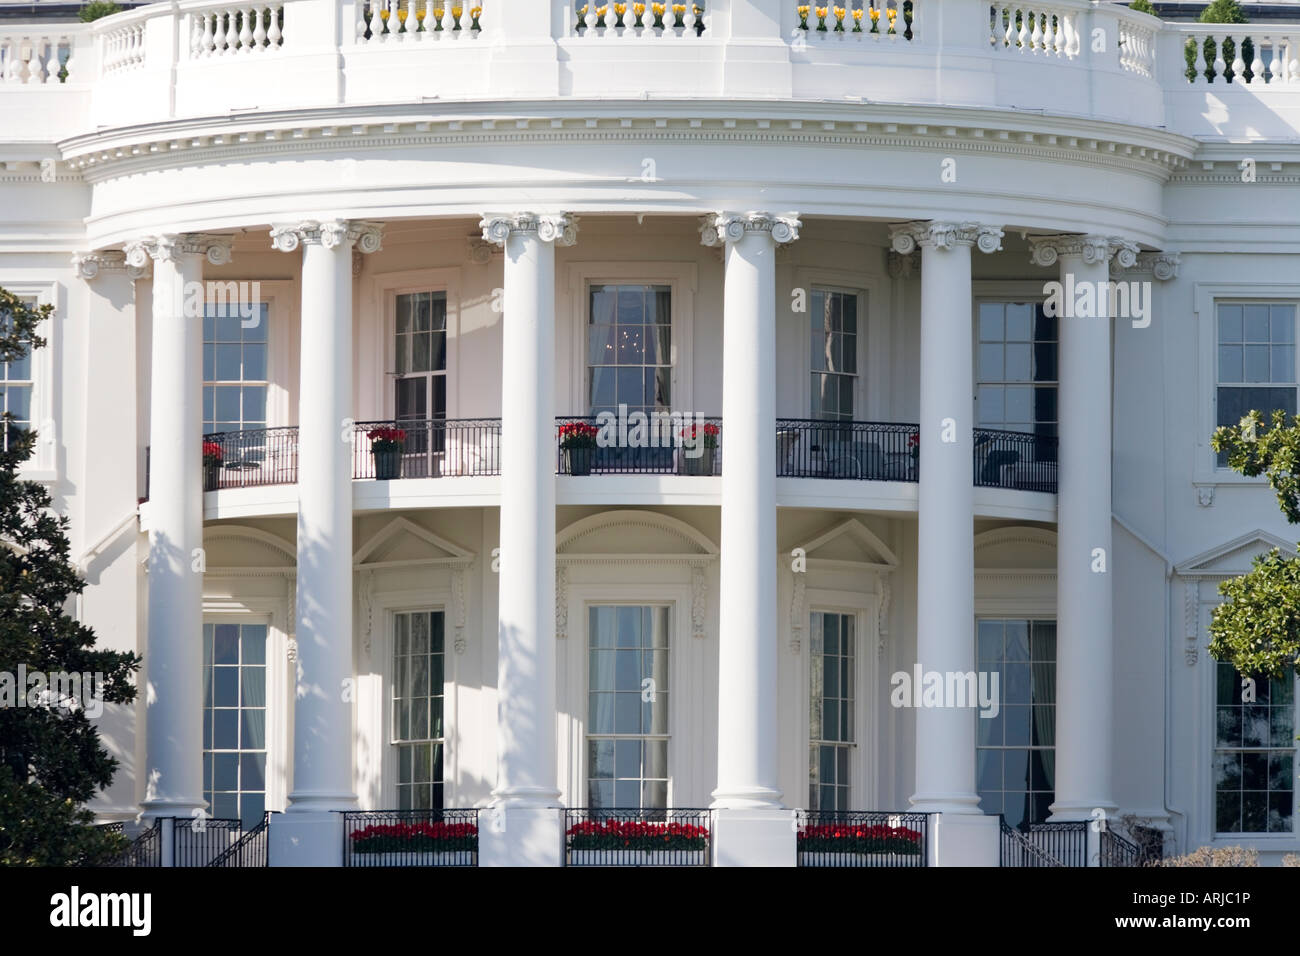 https://c7.alamy.com/comp/ARJC1P/the-truman-balcony-with-tulips-close-up-of-the-rear-of-the-white-house-ARJC1P.jpg